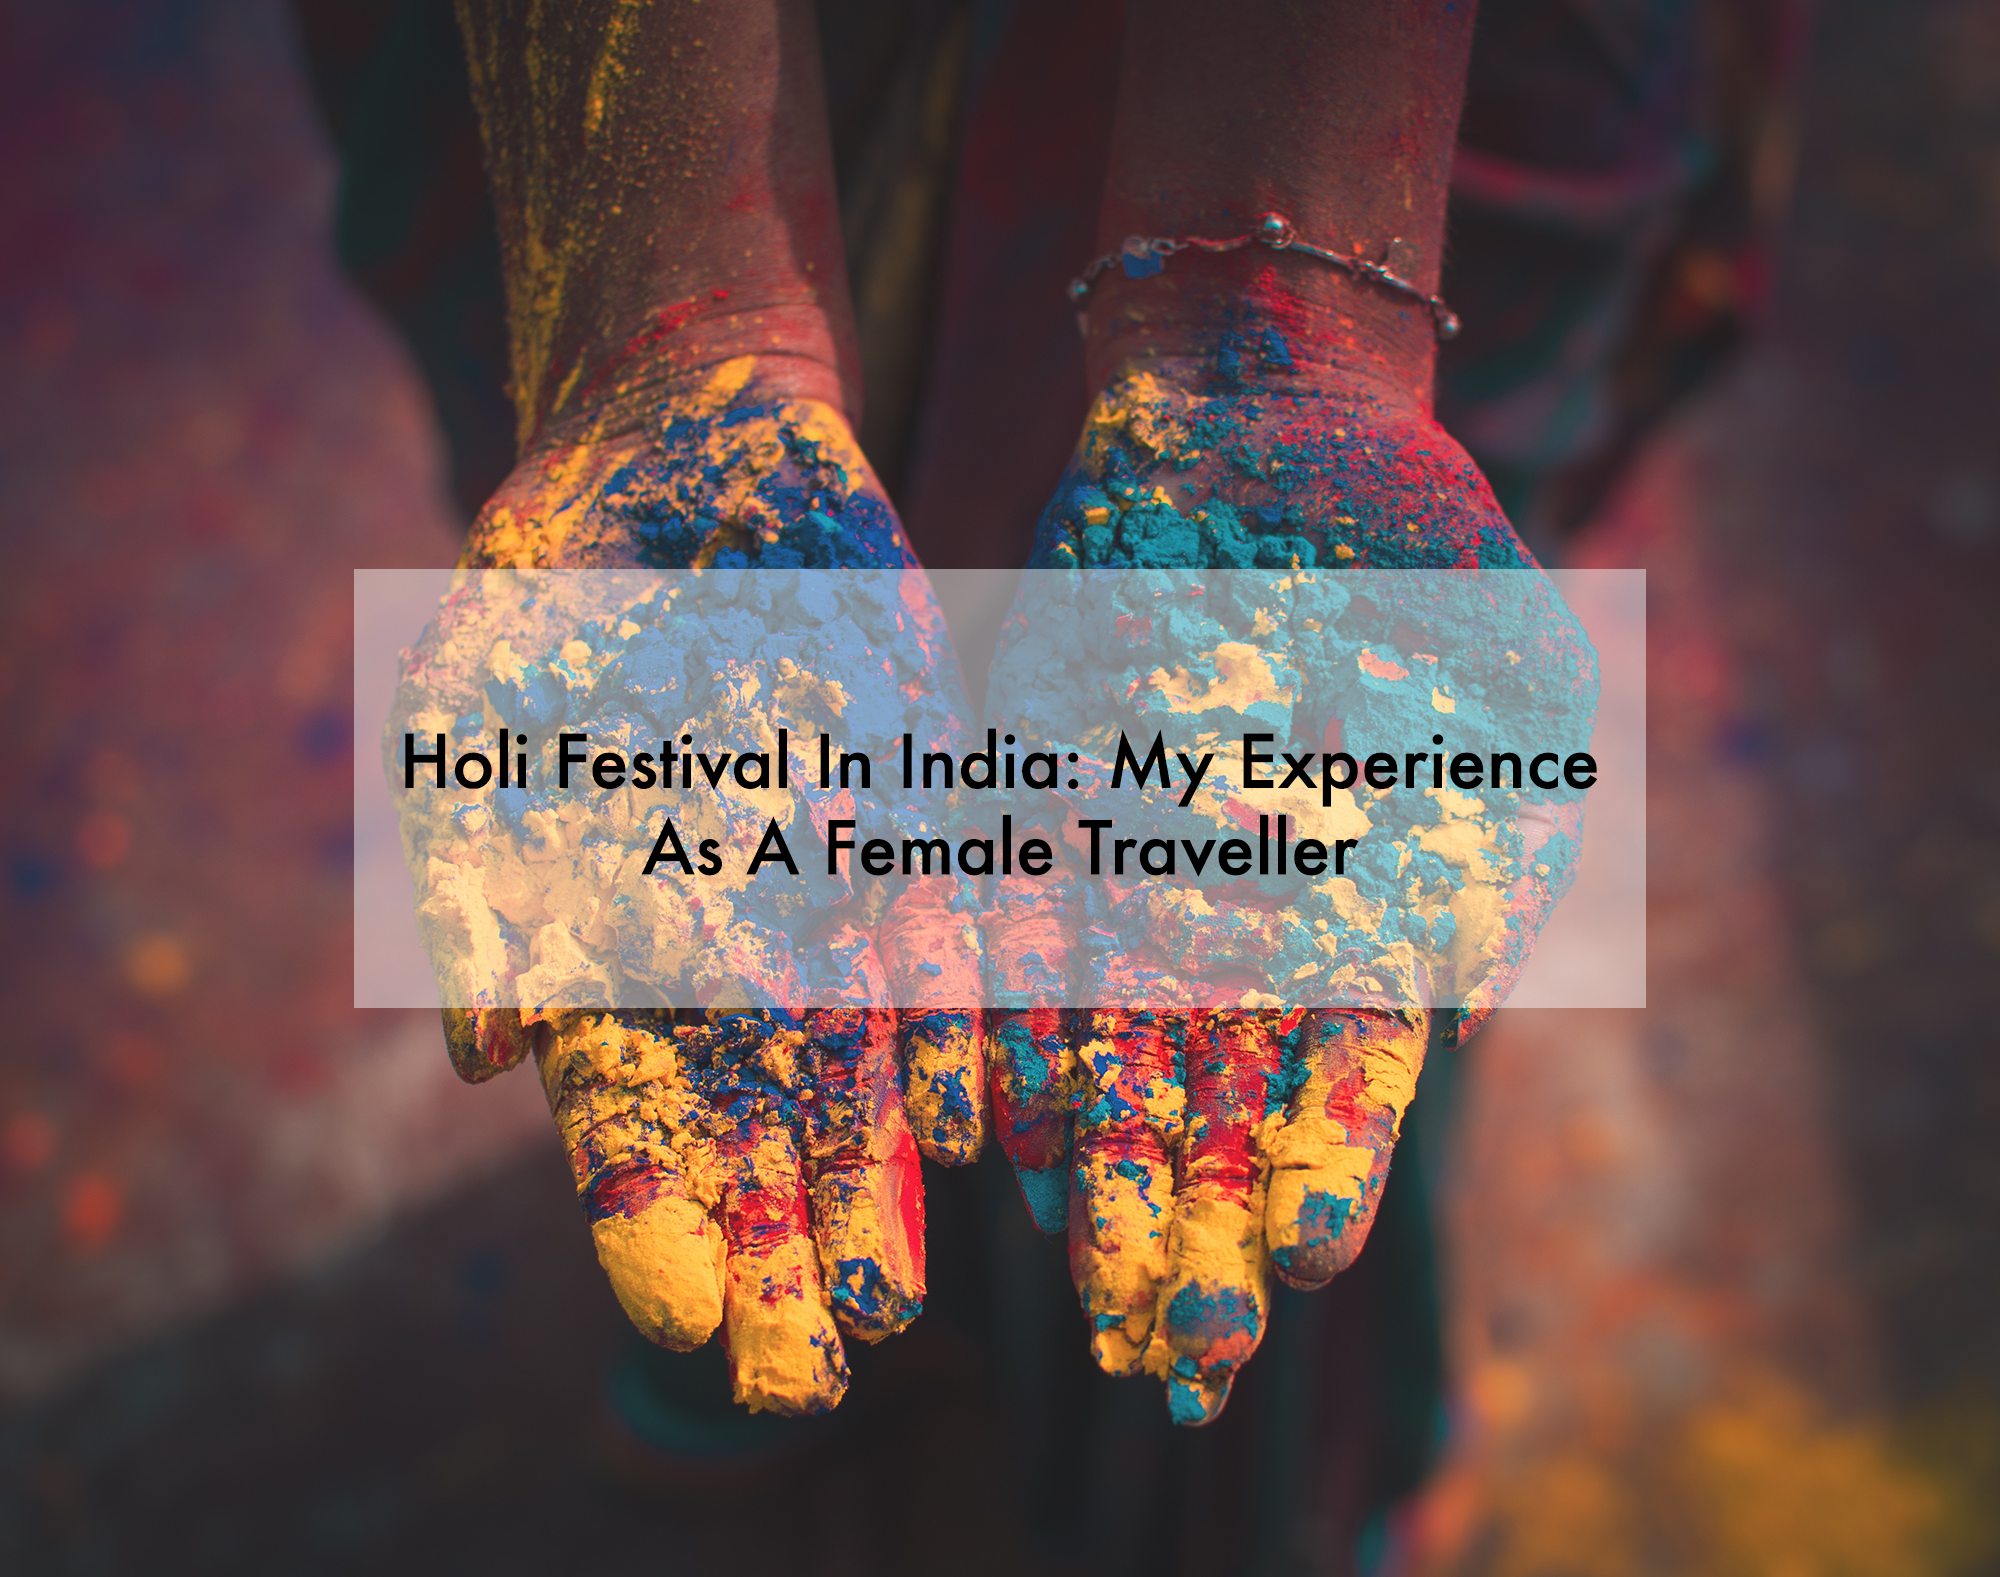 holi festival in india.png